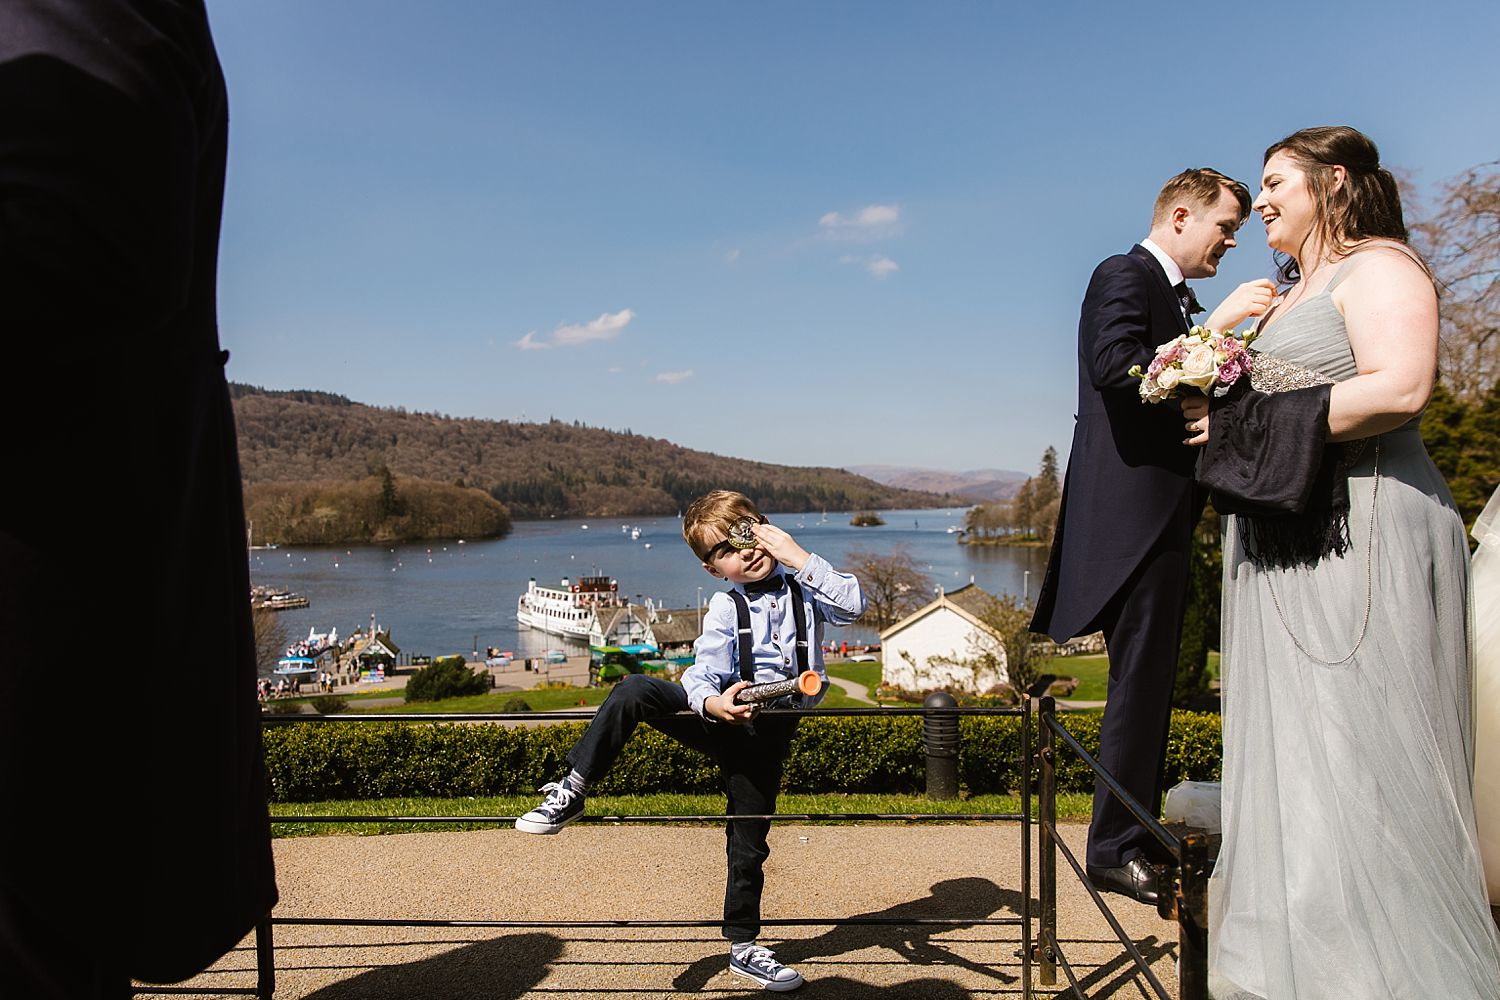 Small child playing and guests mingling at wedding reception with view of Lake Windermere